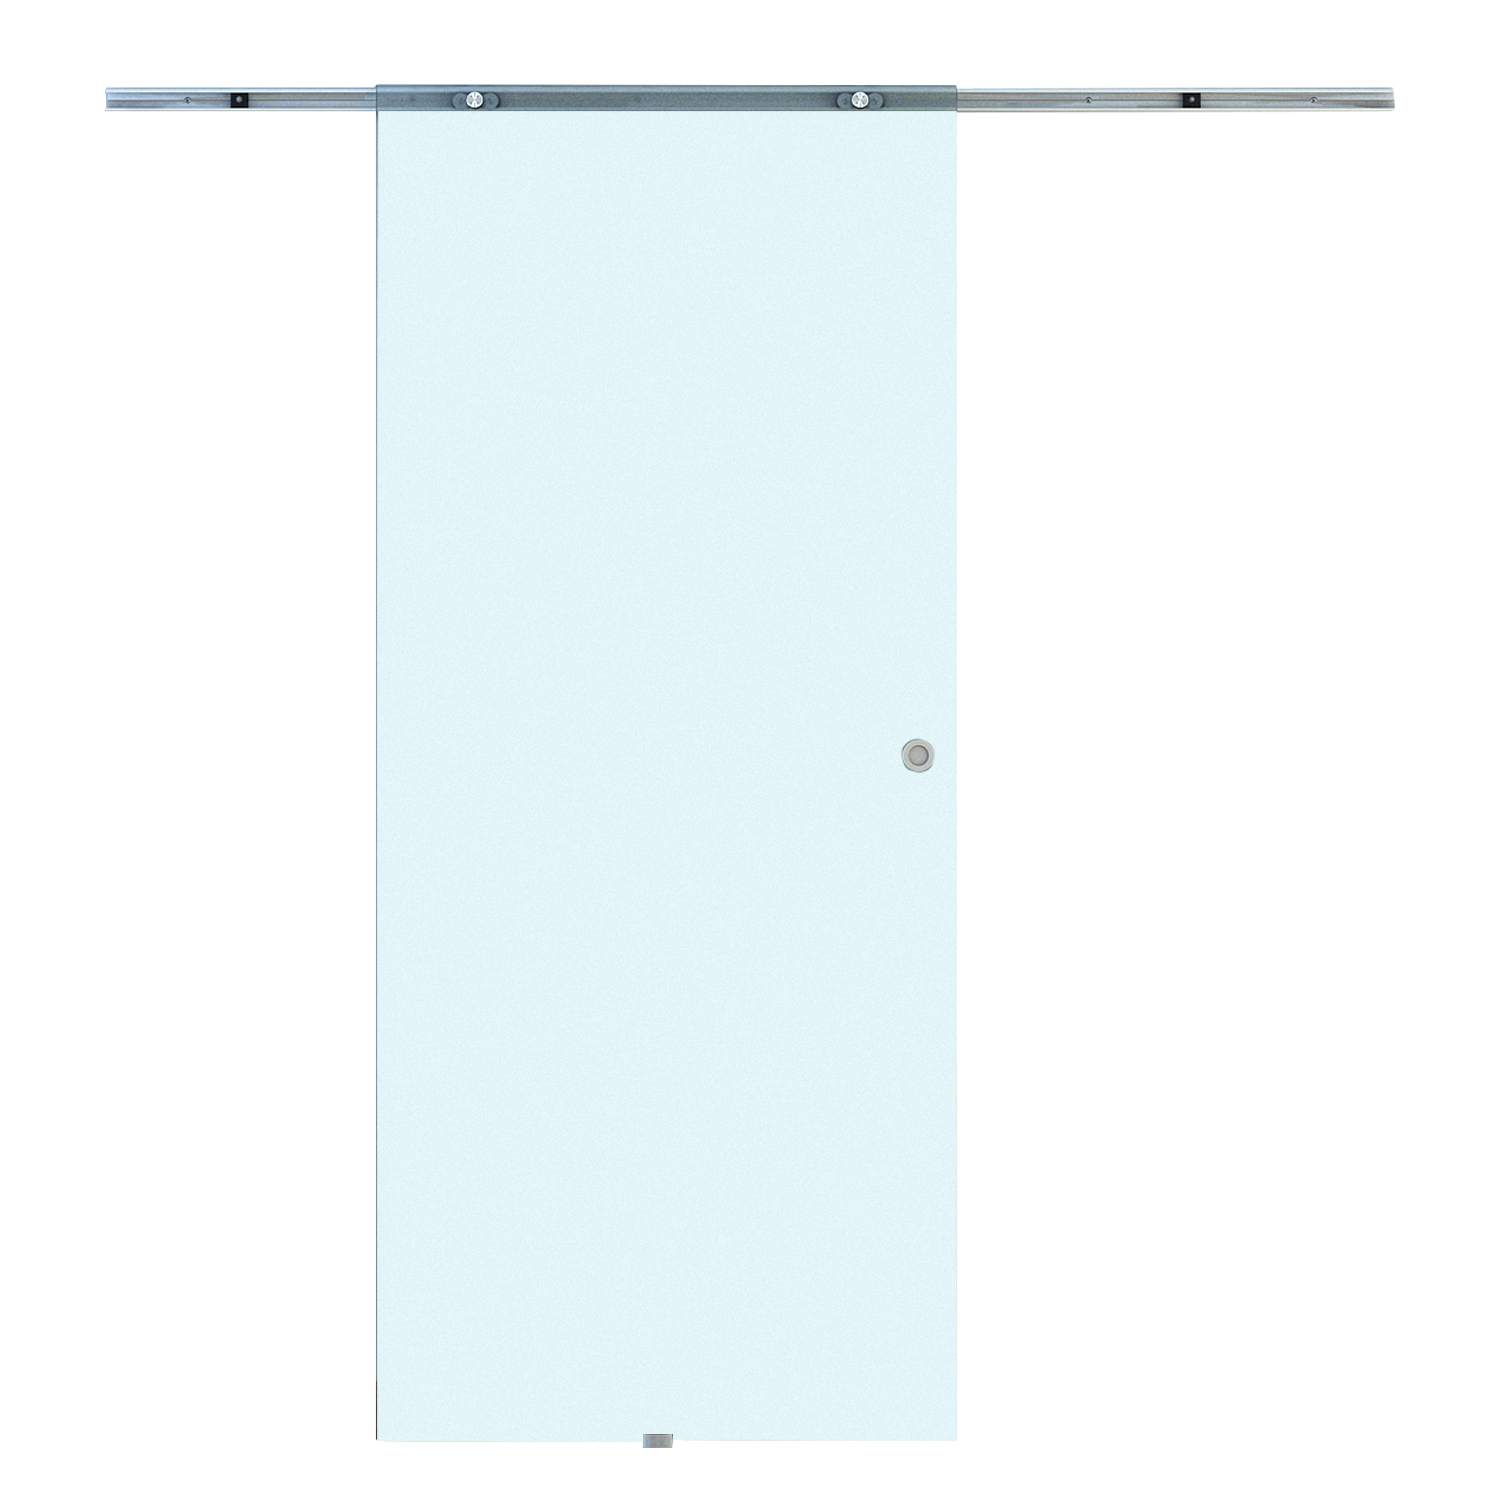 HOMCOM Sliding Door Interior Frosted Glass With Aluminum Track 77.5 × 205 × 0.8cm